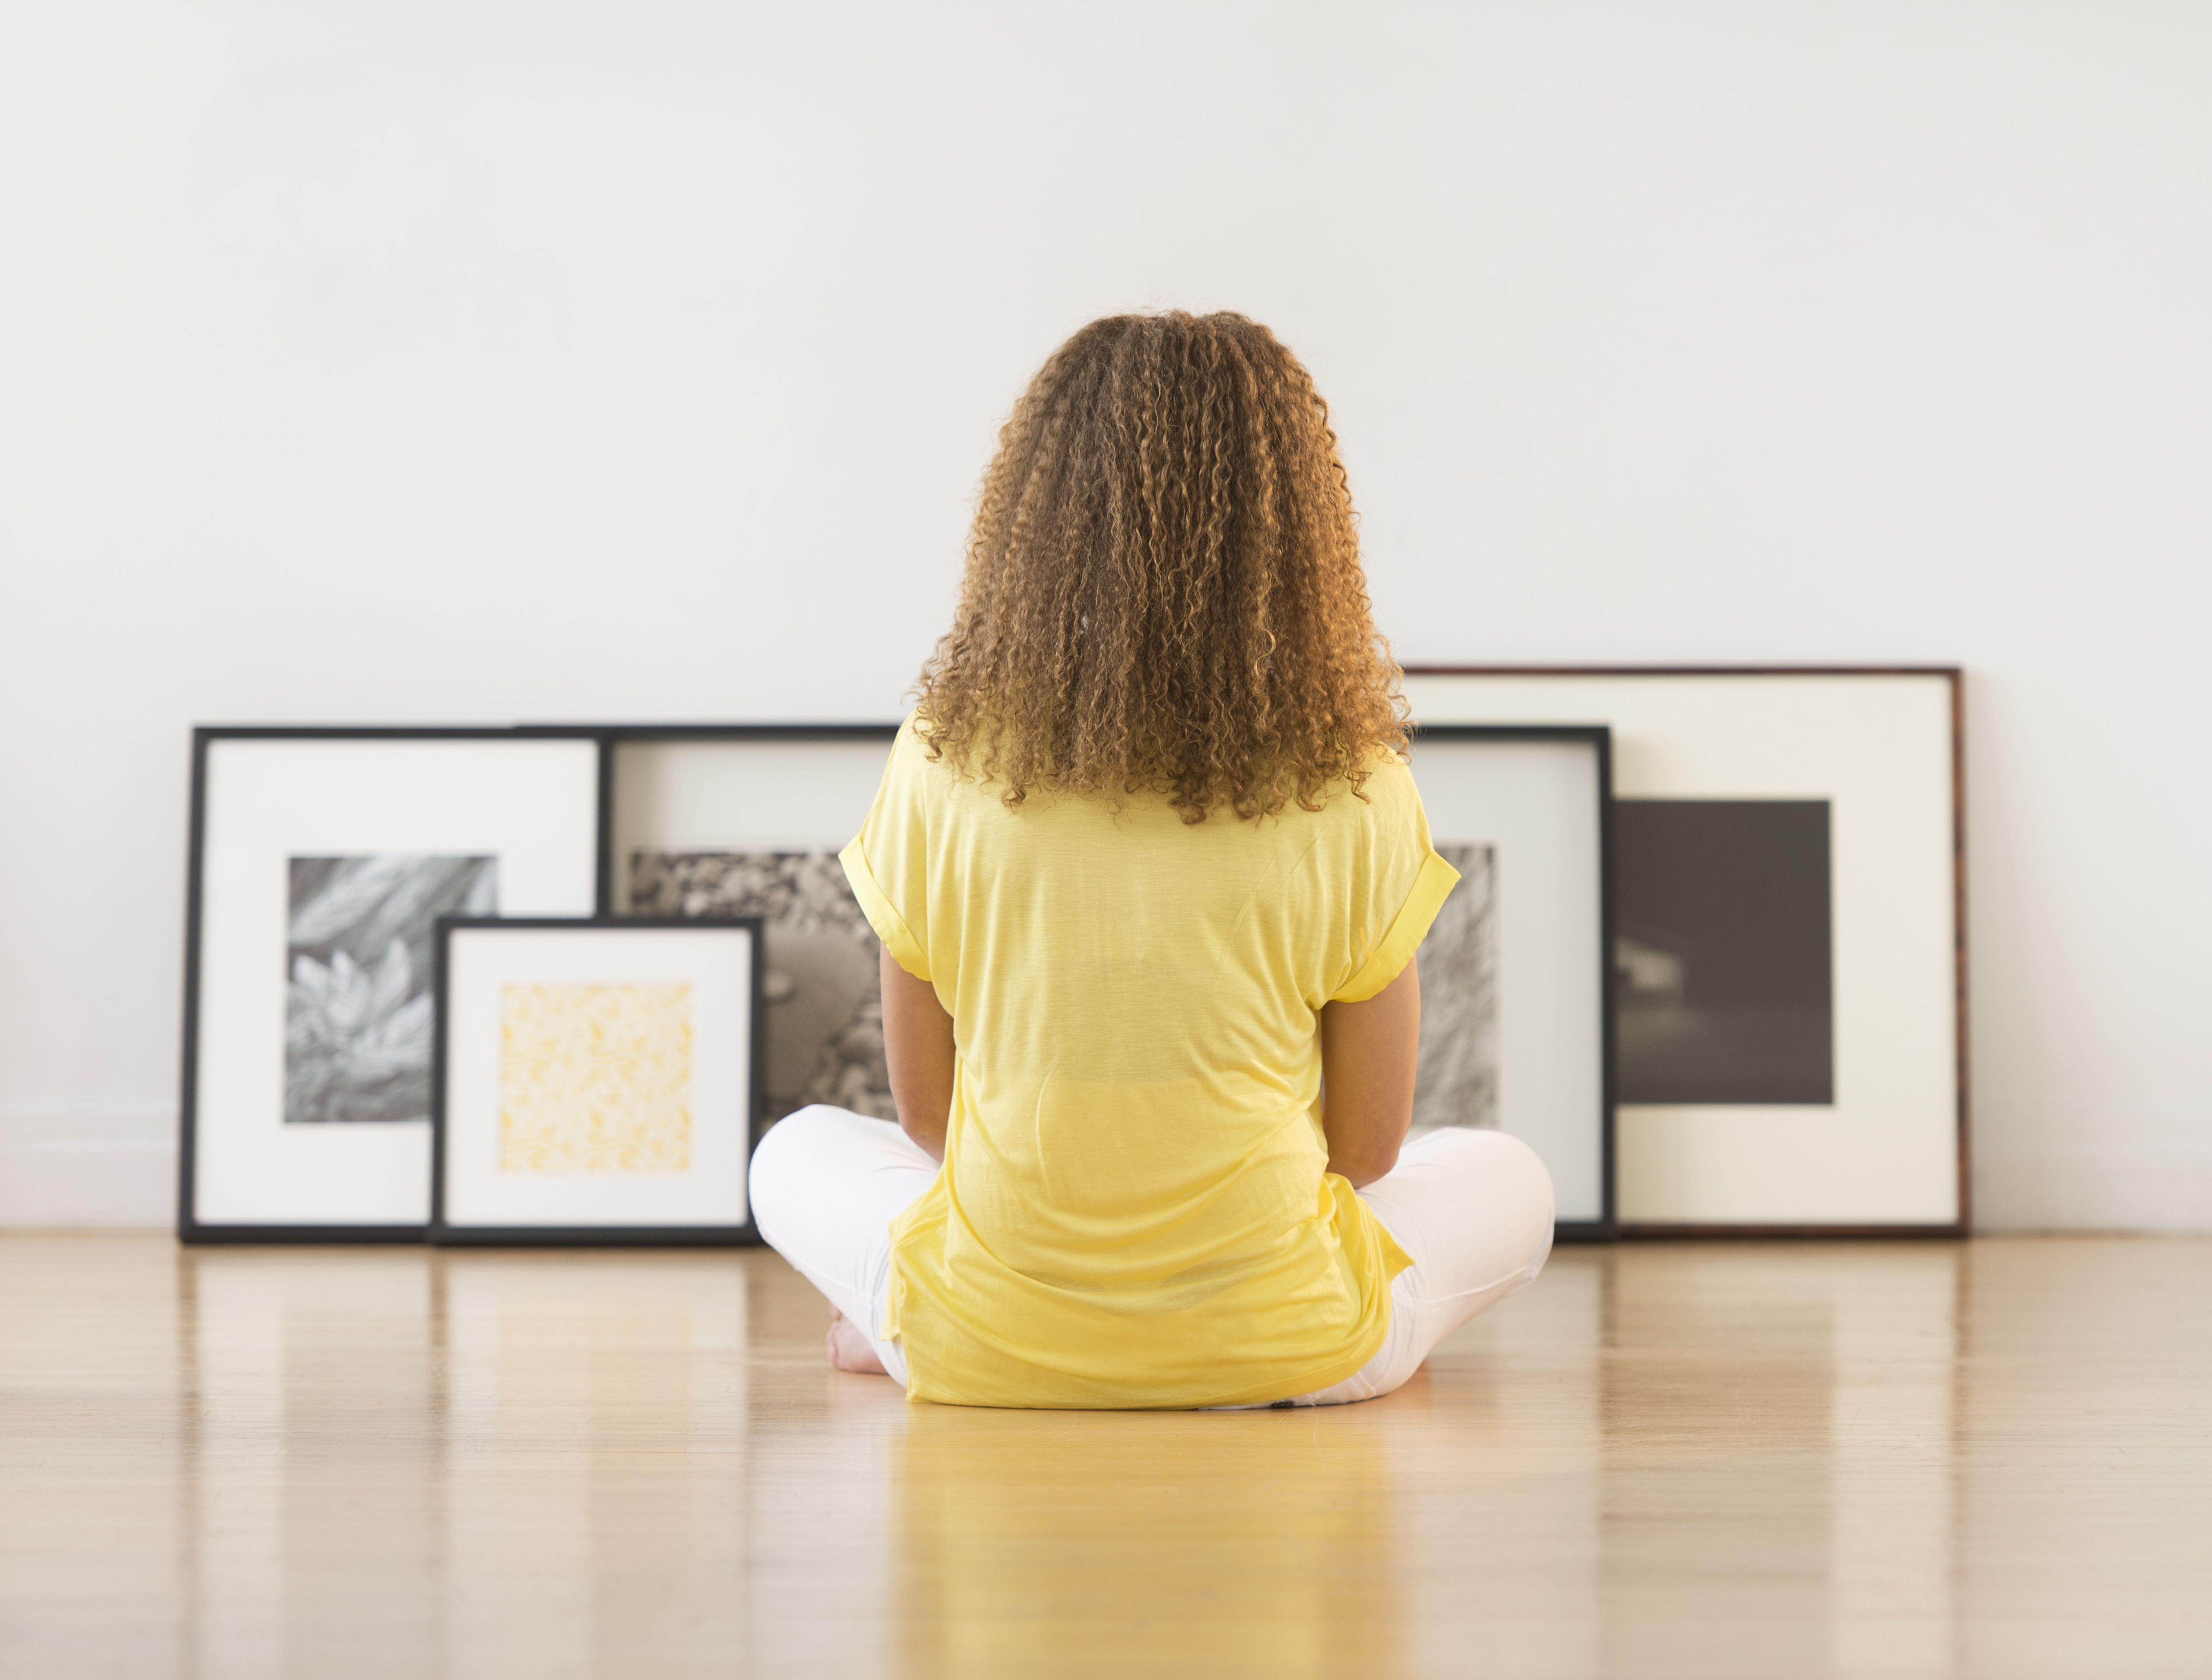 How to Incorporate Art Into Your Home Décor